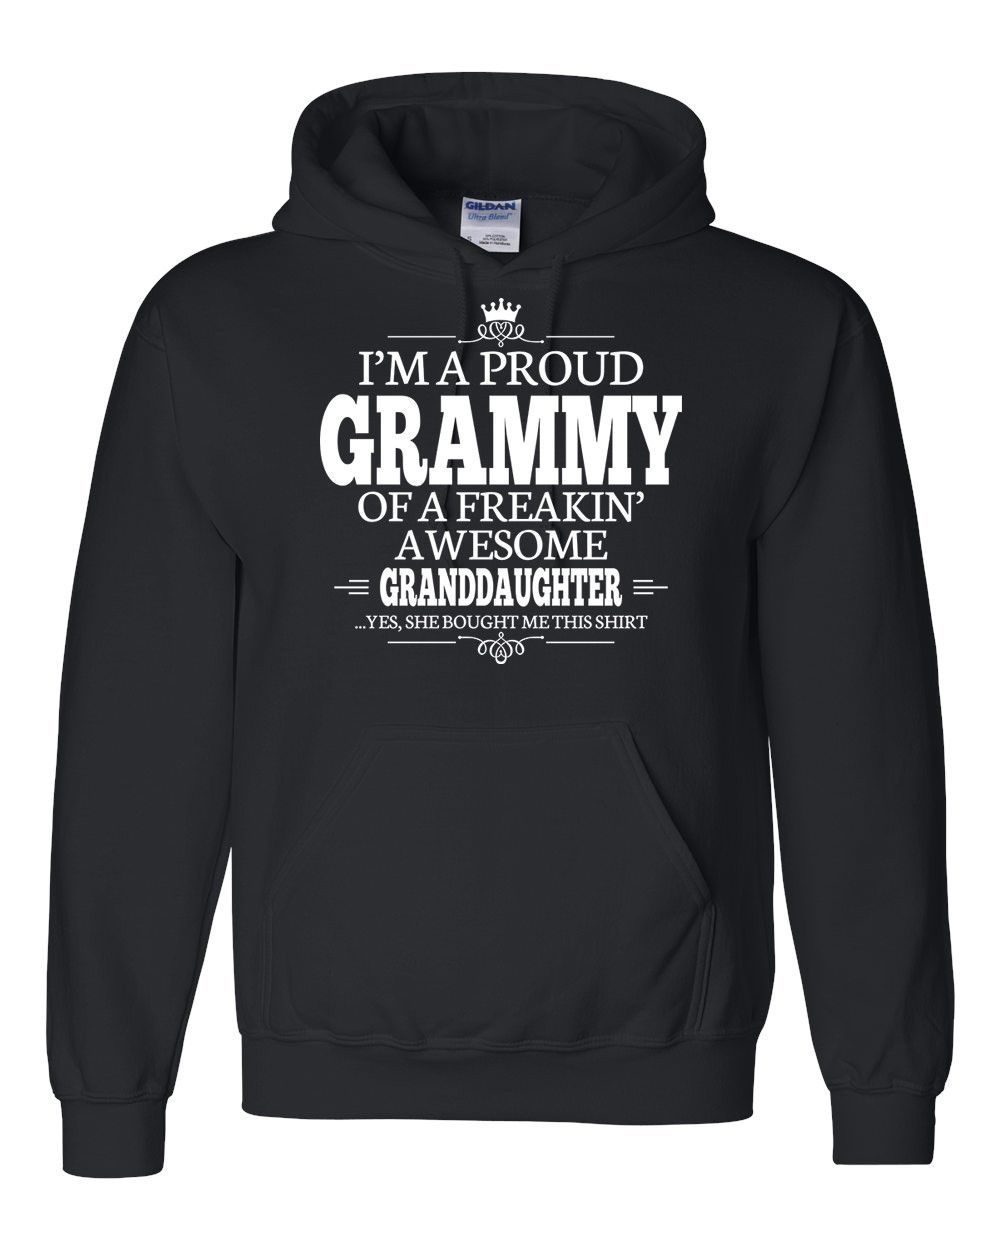 I'm a proud grammy of a freakin' awesome granddaughter Hoodie